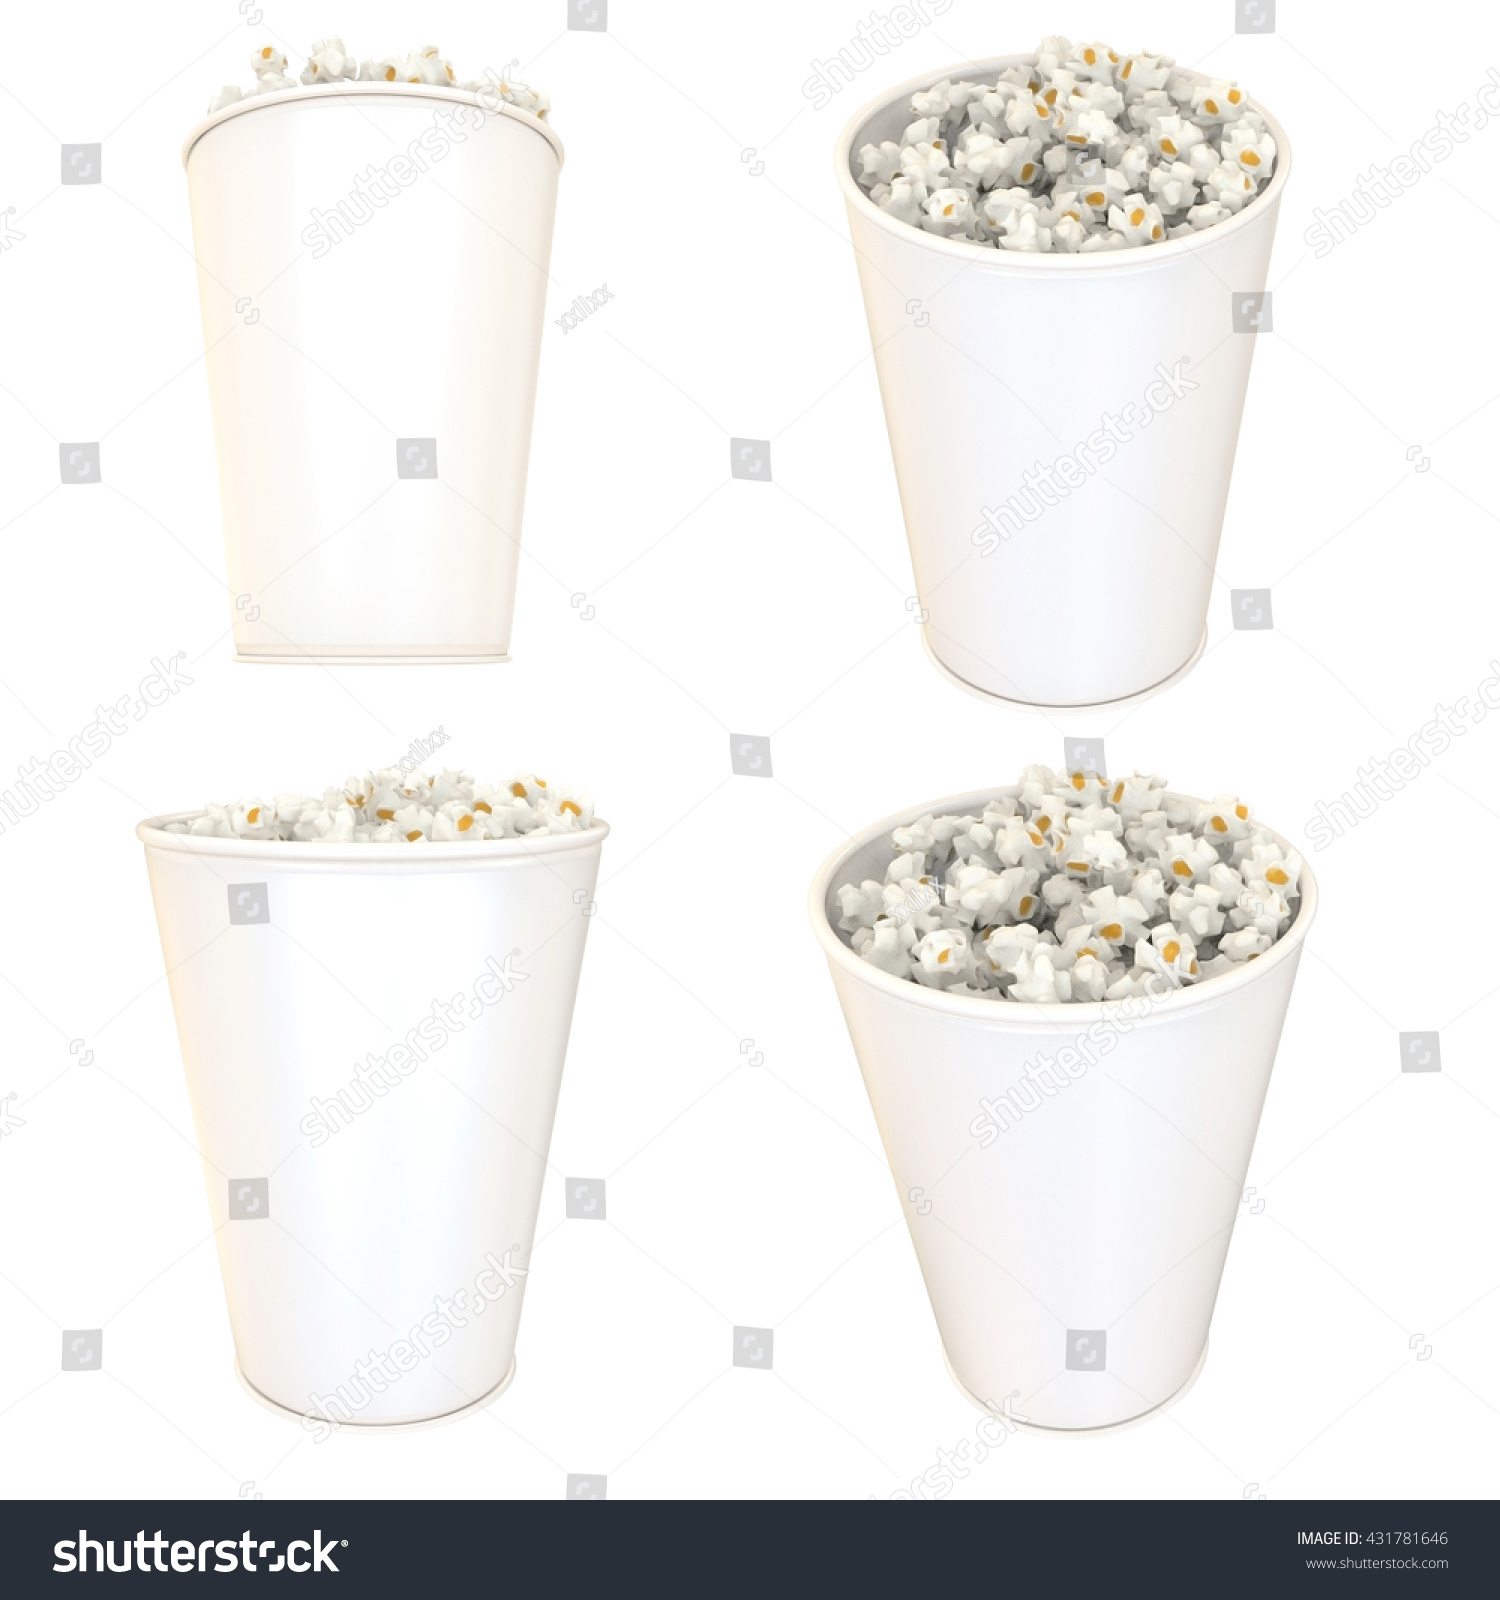 Popcorn white bucket 3 d illustration set stock illustration popcorn in white bucket 3d illustration set mock up template ready for your design maxwellsz